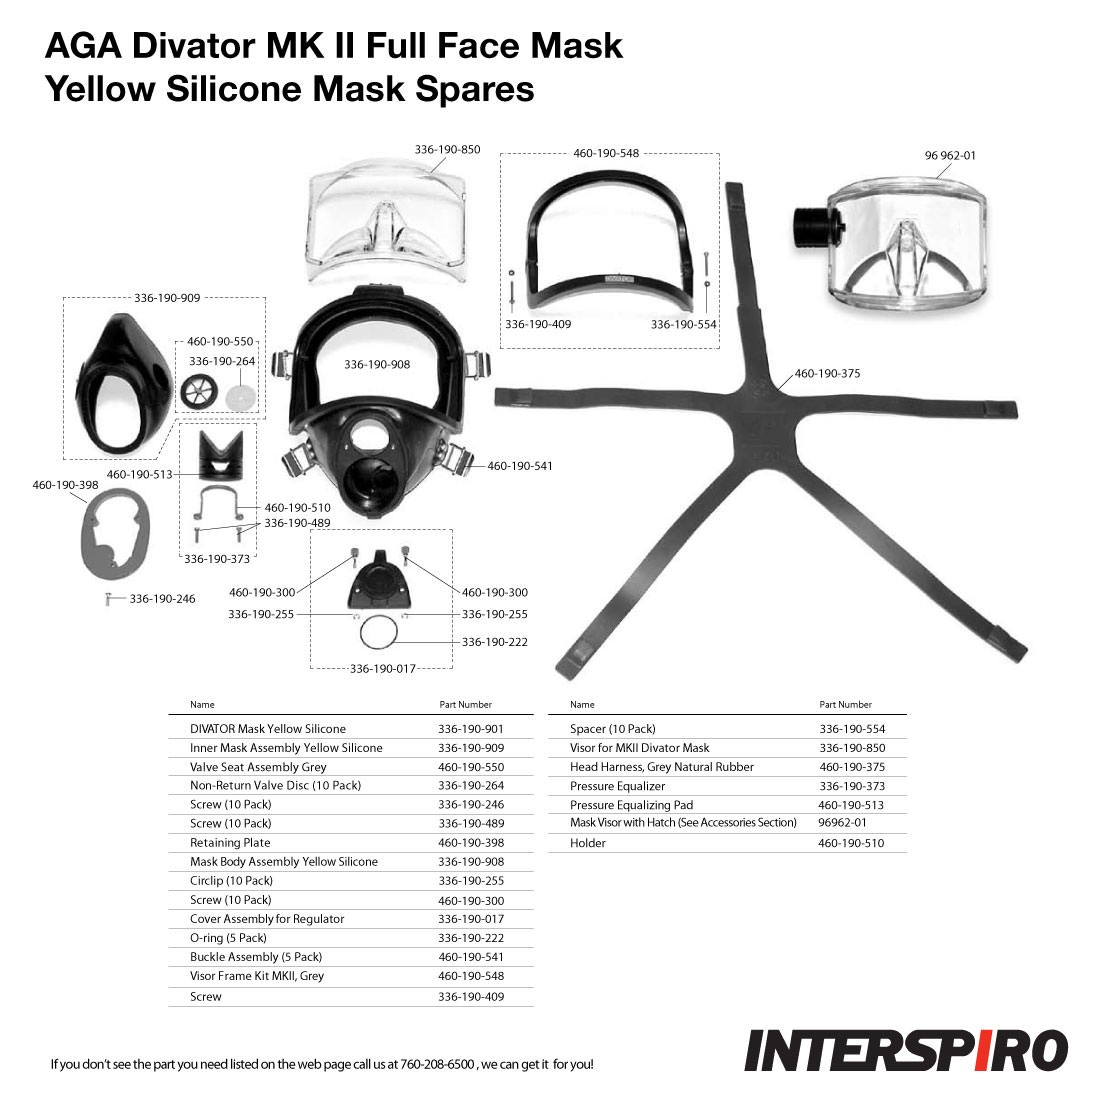 Interspiro Aga Divator Mk Ii Full Face Mask With Demand